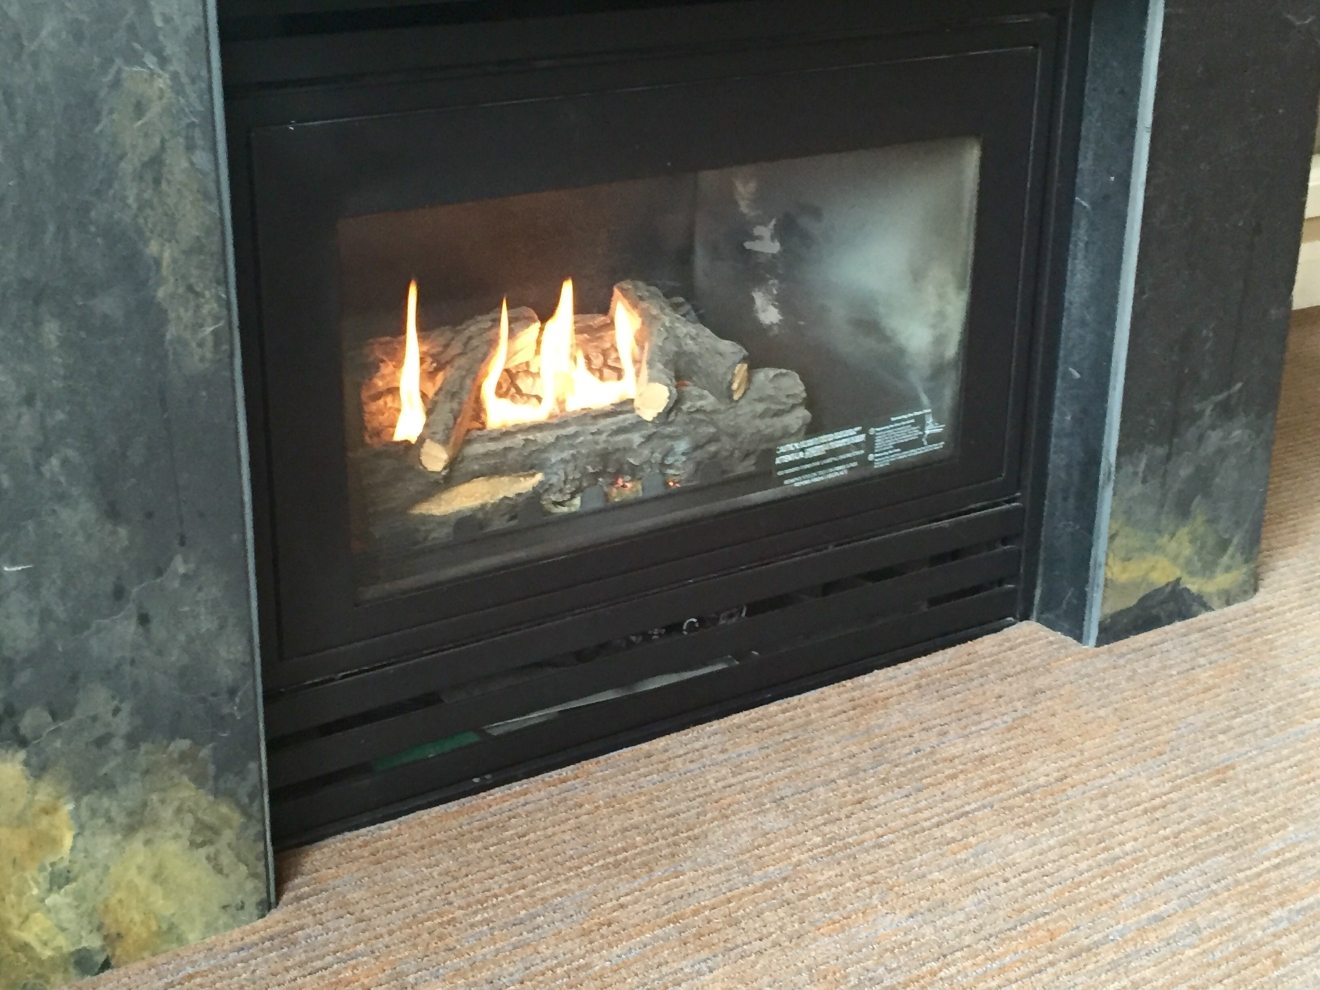 While we were bummed to not be able to do the bike course, a cozy day in our suite with the fire didn't end up being so bad. (Image: Britt Thorson / Seattle Refined)